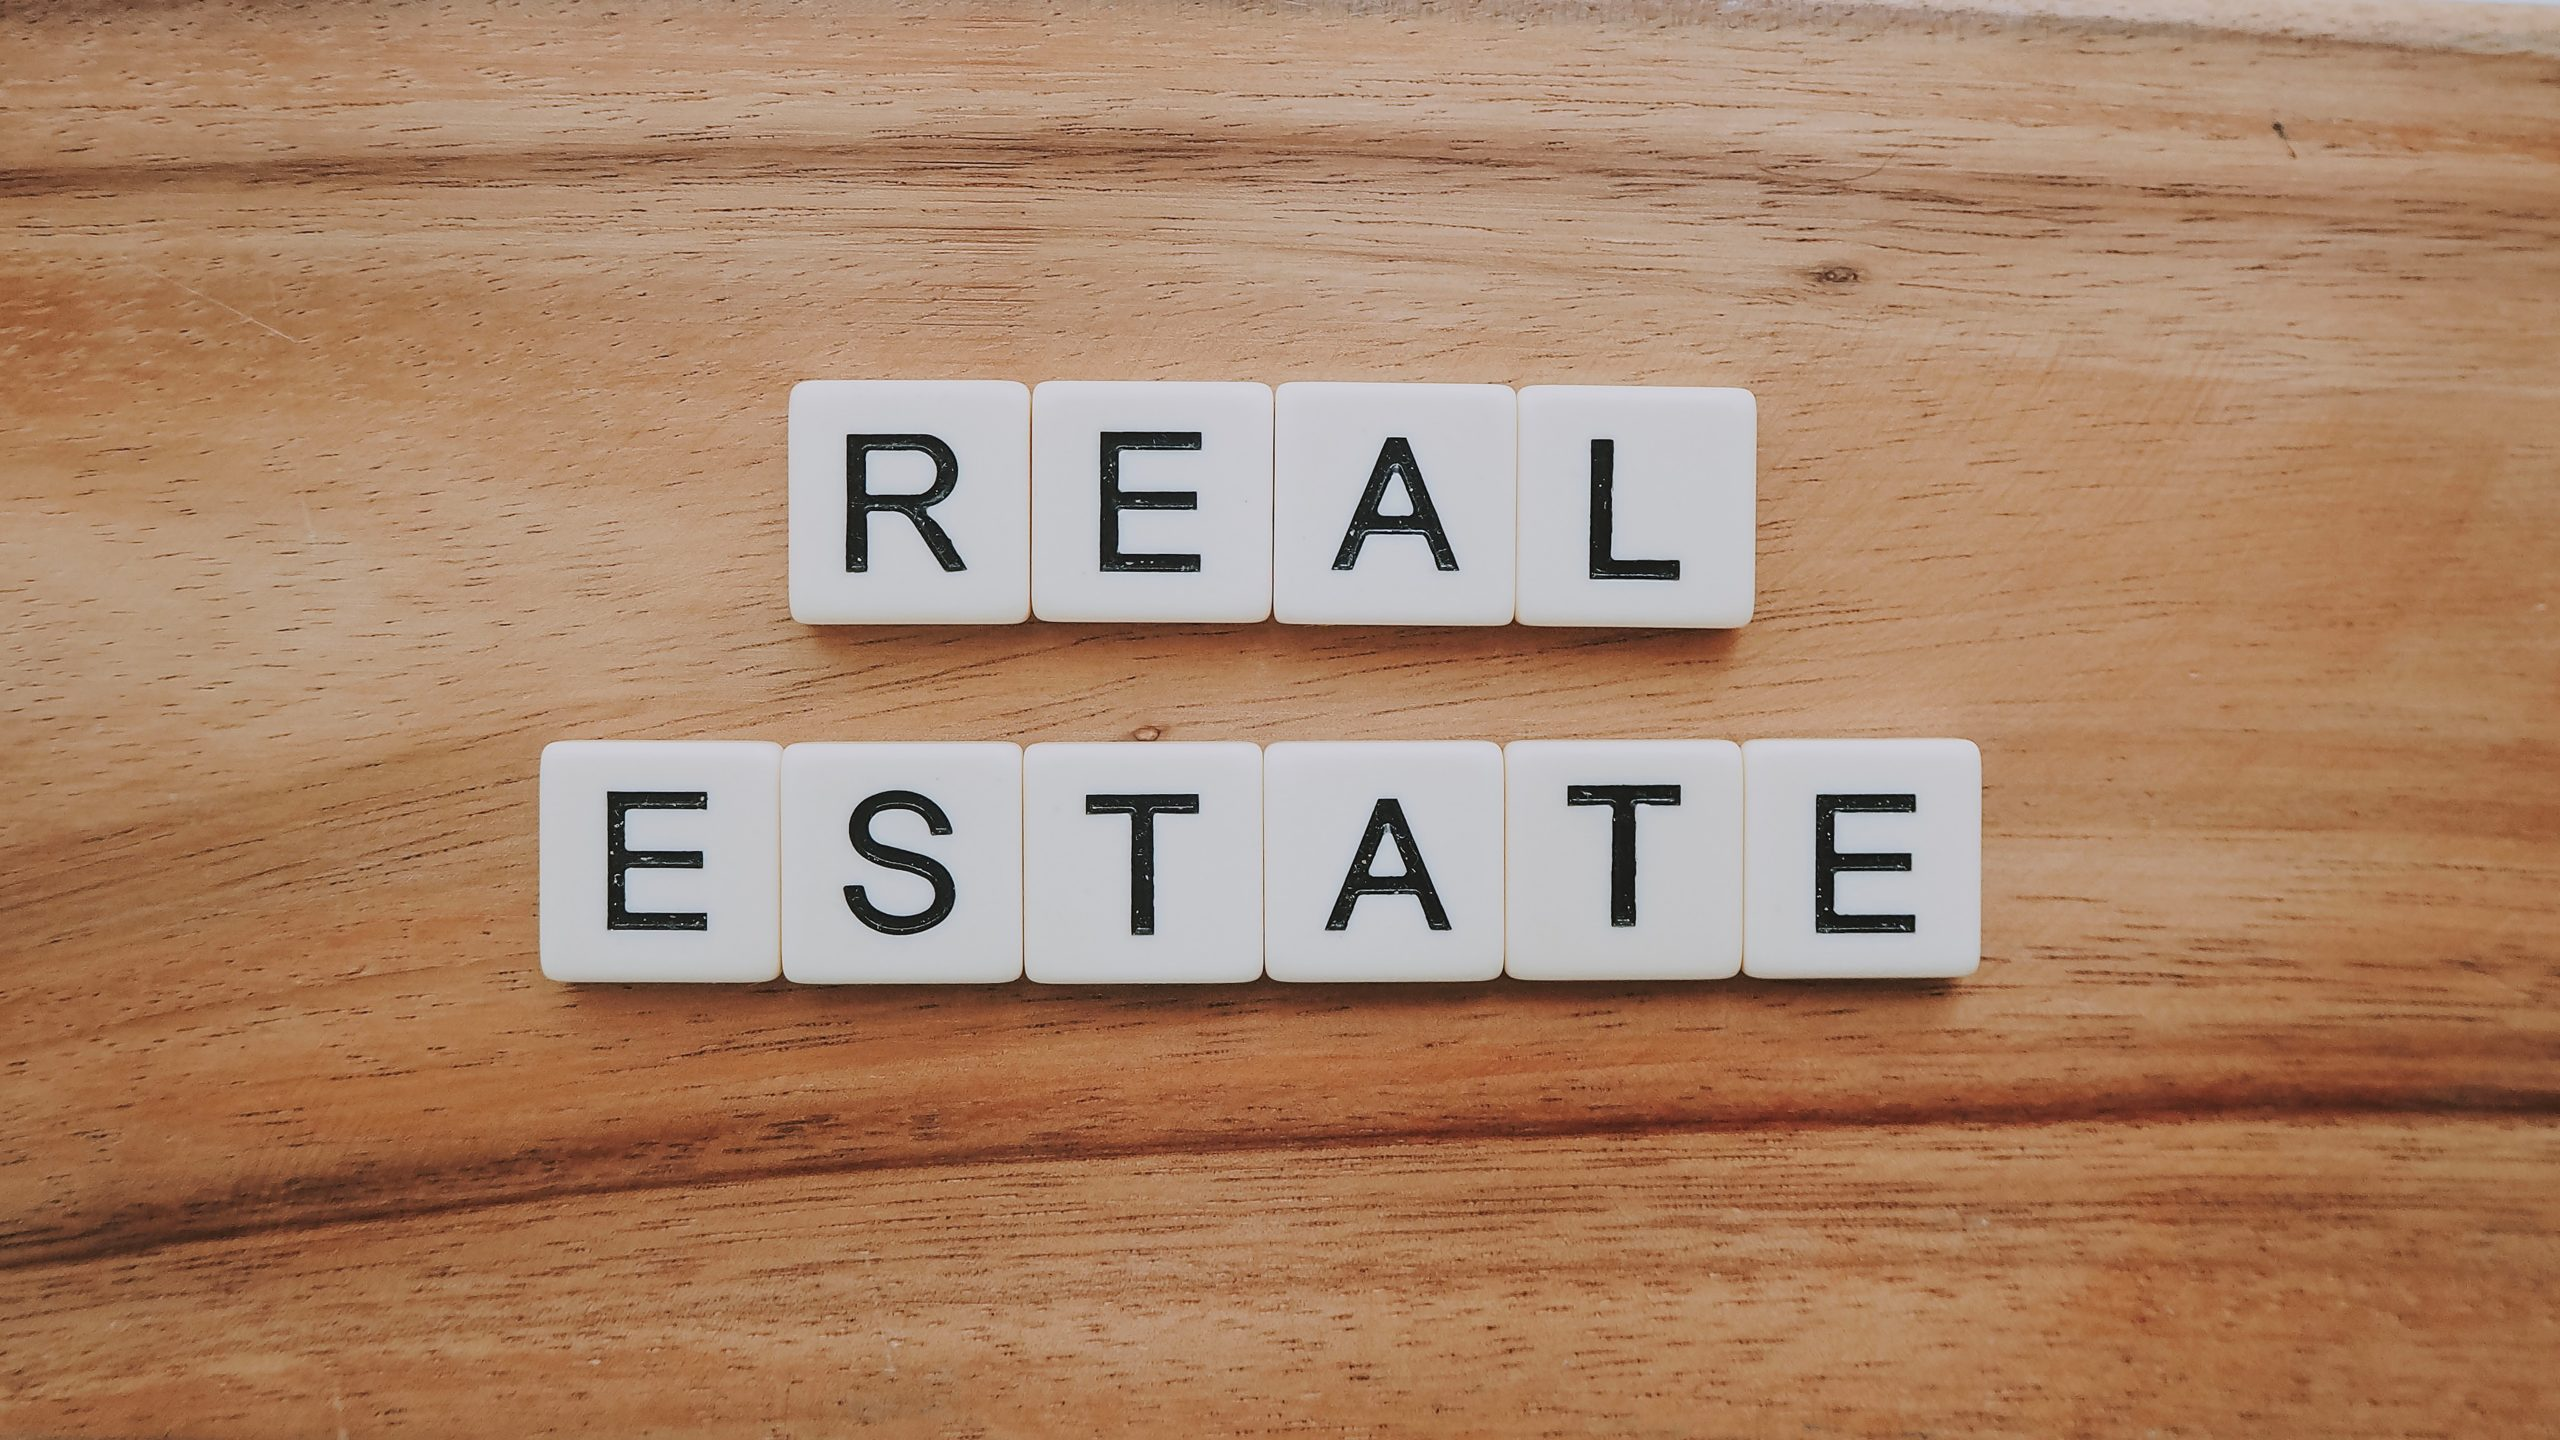 Real Estate Scrabble Pieces